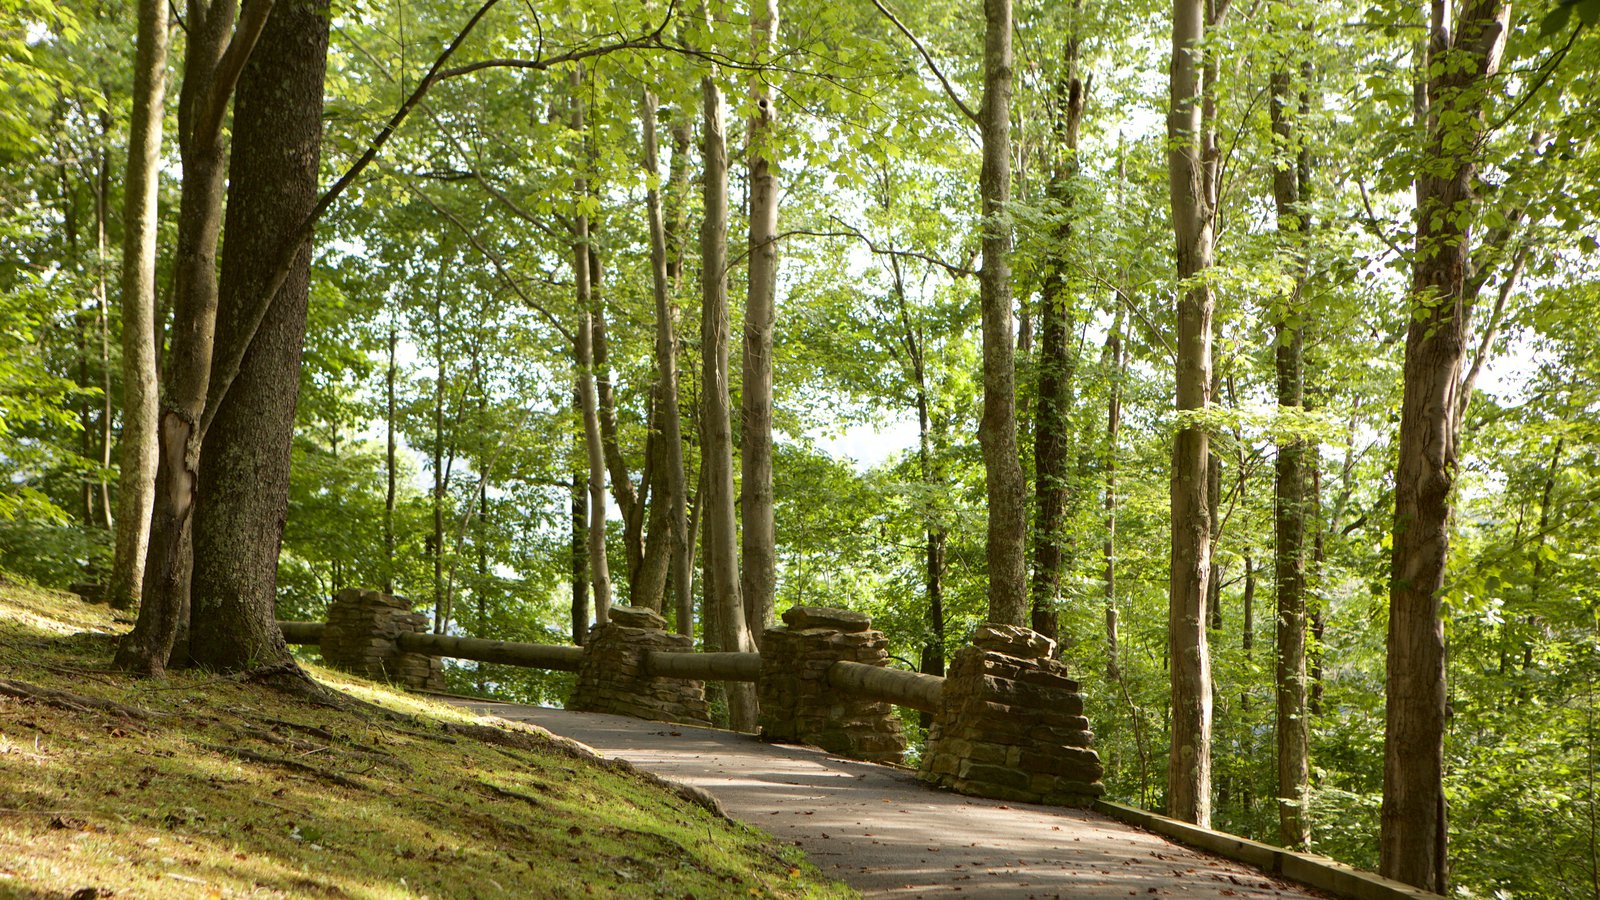 Hawks Nest State Park showing a park and forest scenes